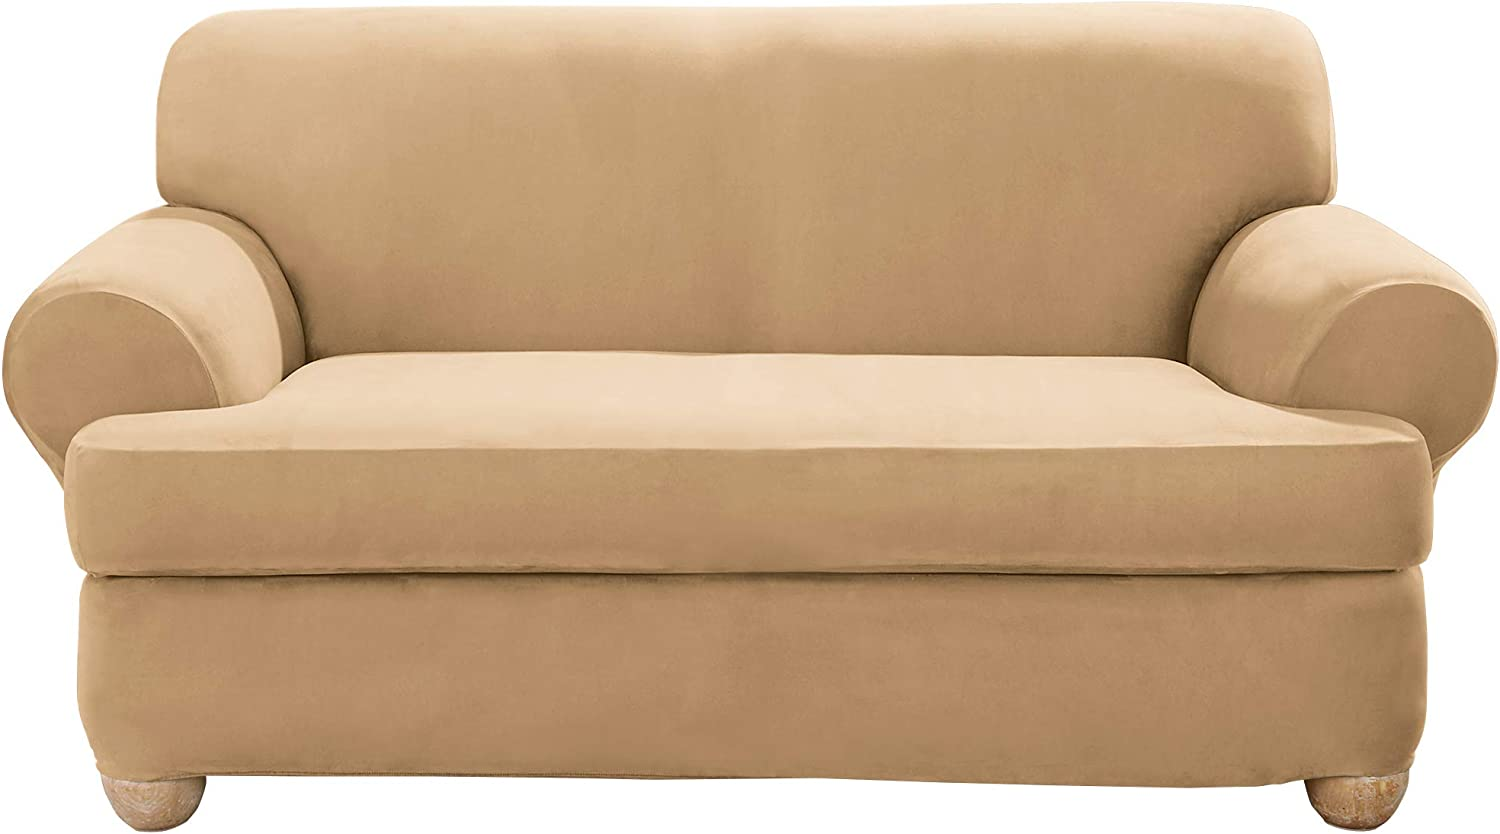 Blue 2 Ply Scott 51 cm wide Couch Covers 12 rolls x 140 sheets 7398